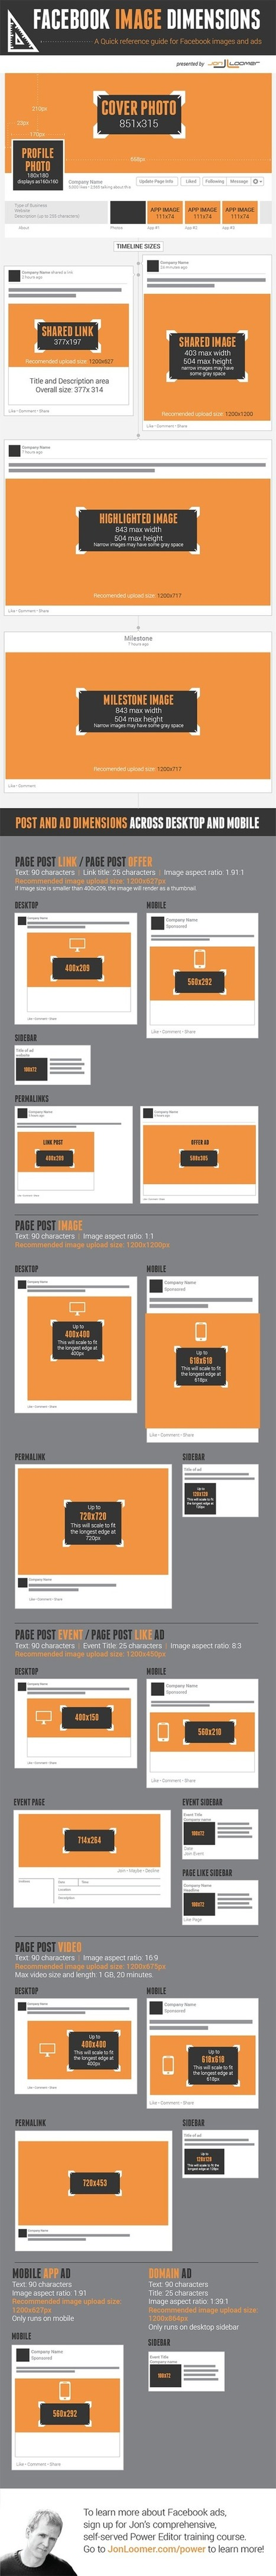 Create the Perfect Facebook Page With This Image Dimension Cheat Sheet | Design | Scoop.it